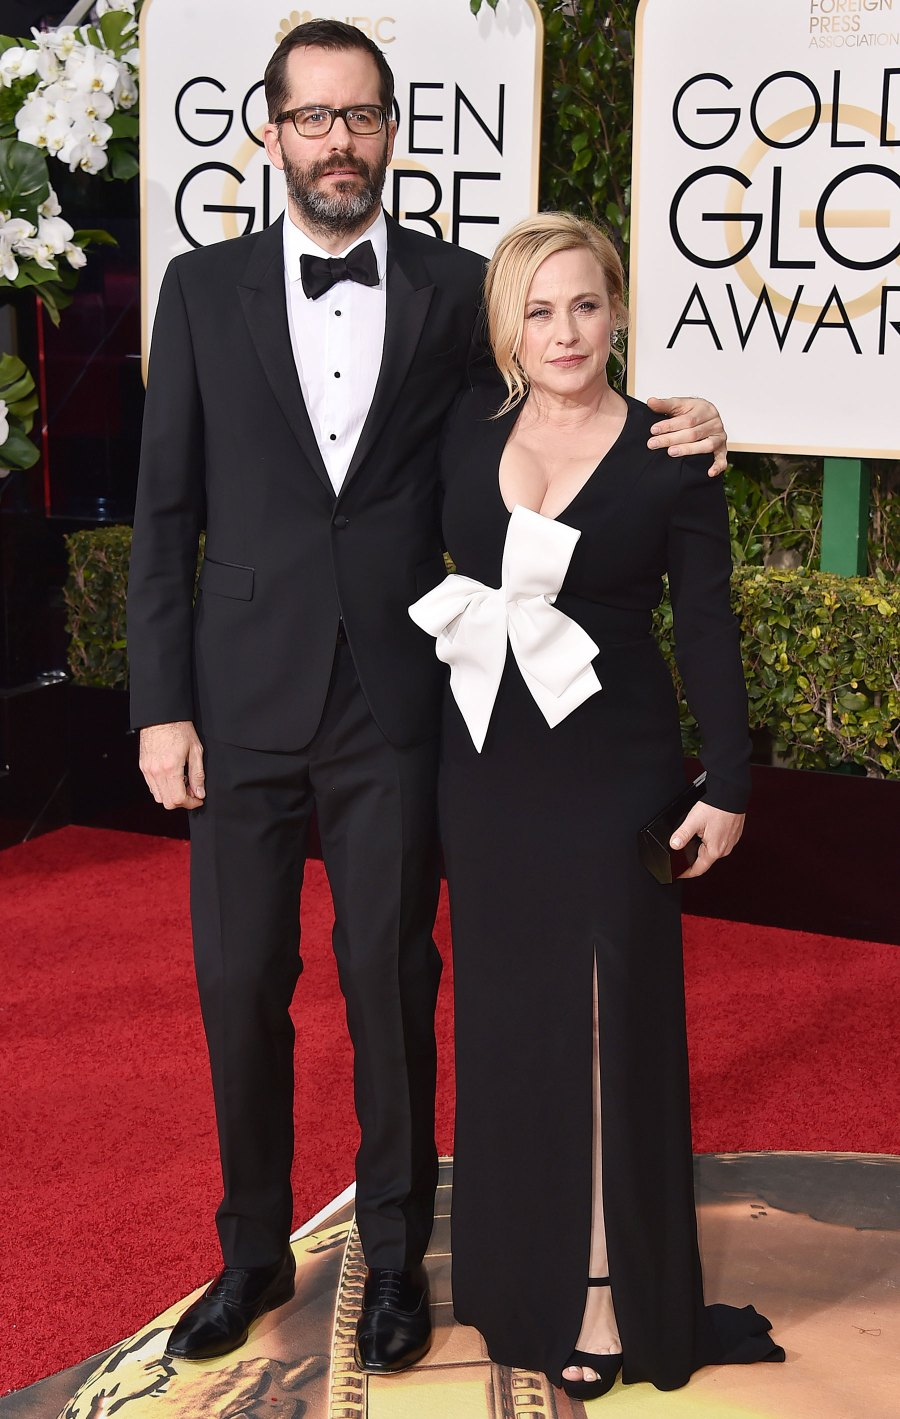 Patricia Arquette's Golden Globe Awards Looks - 2016